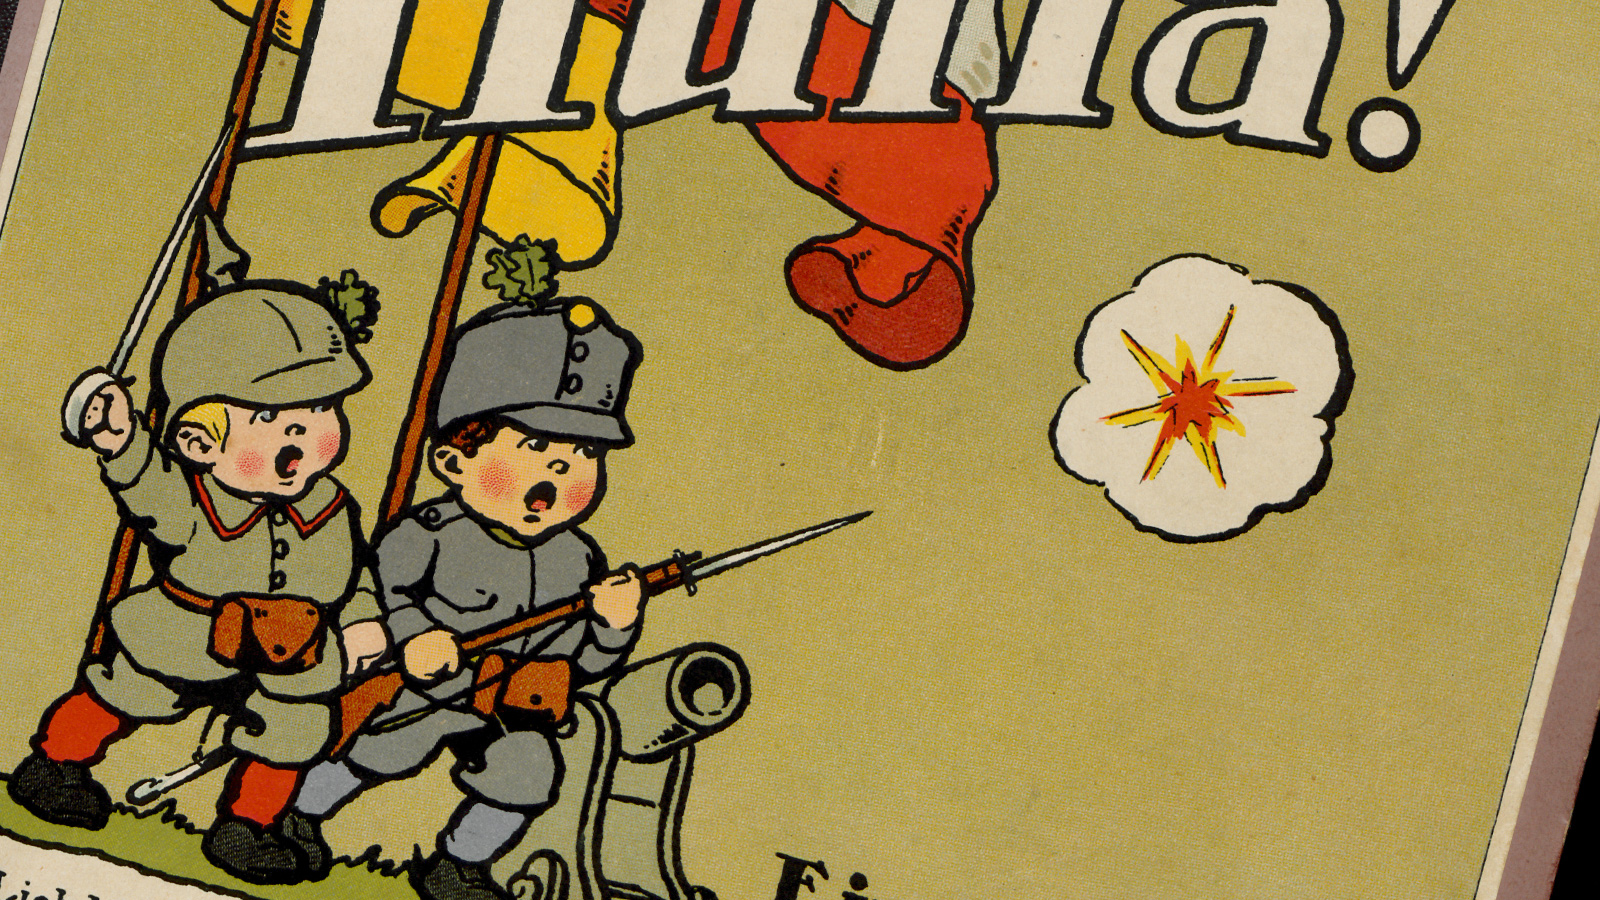 Banner for Children's article. A cropped image of a children's book cover. On a light green background, two cartoonised children are pictured holding rifles and flags.